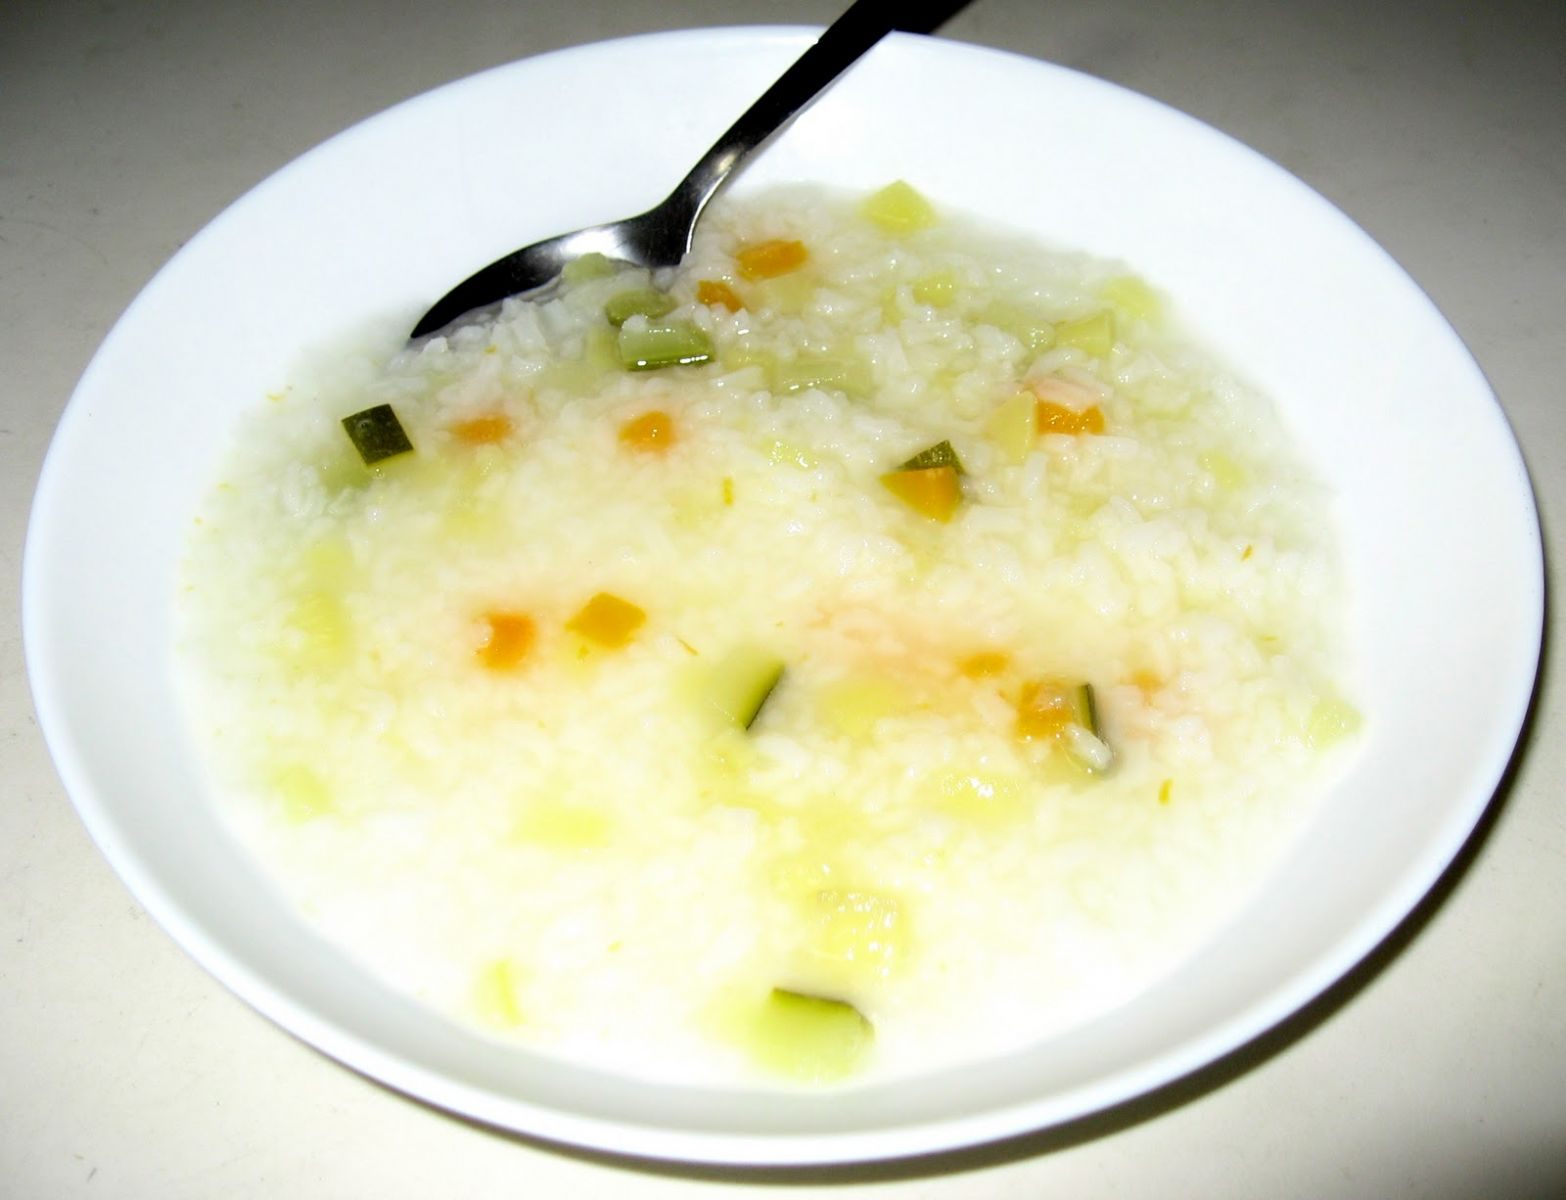 Light porridge using tapioca